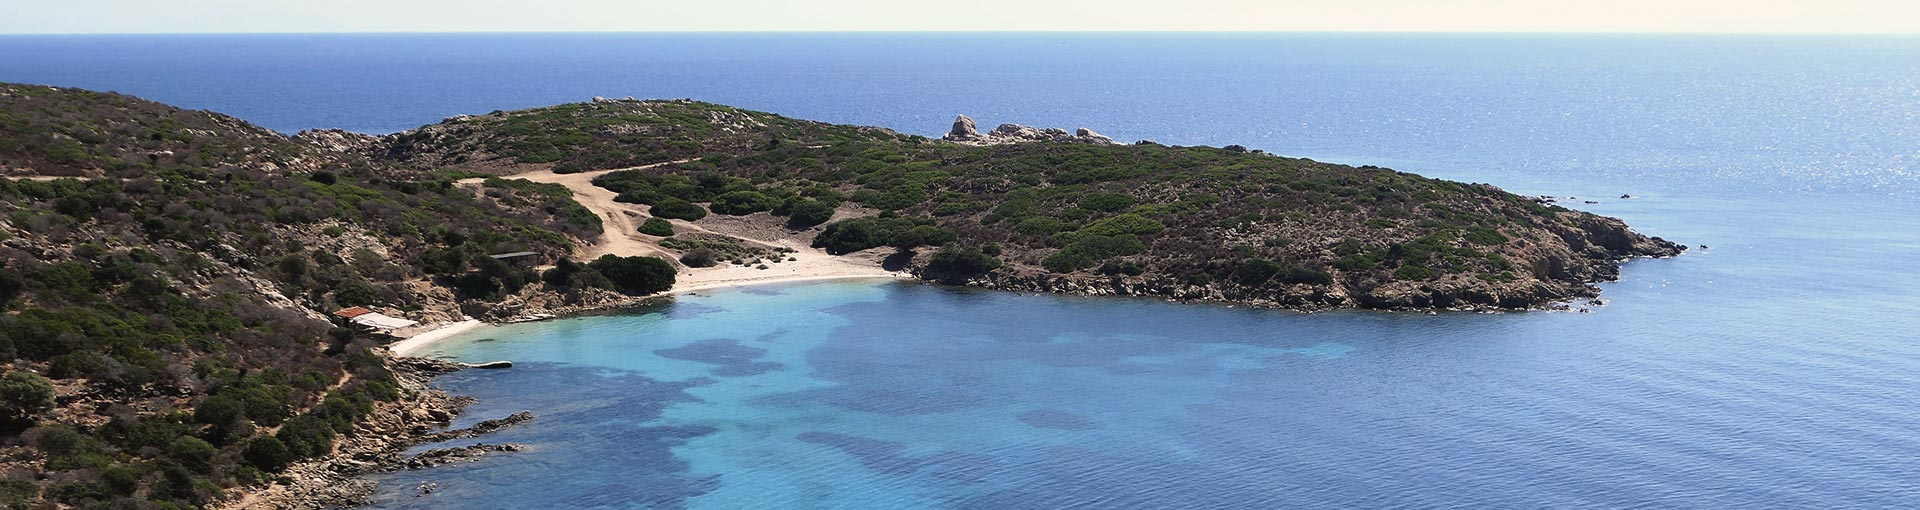 asinara-featured-img